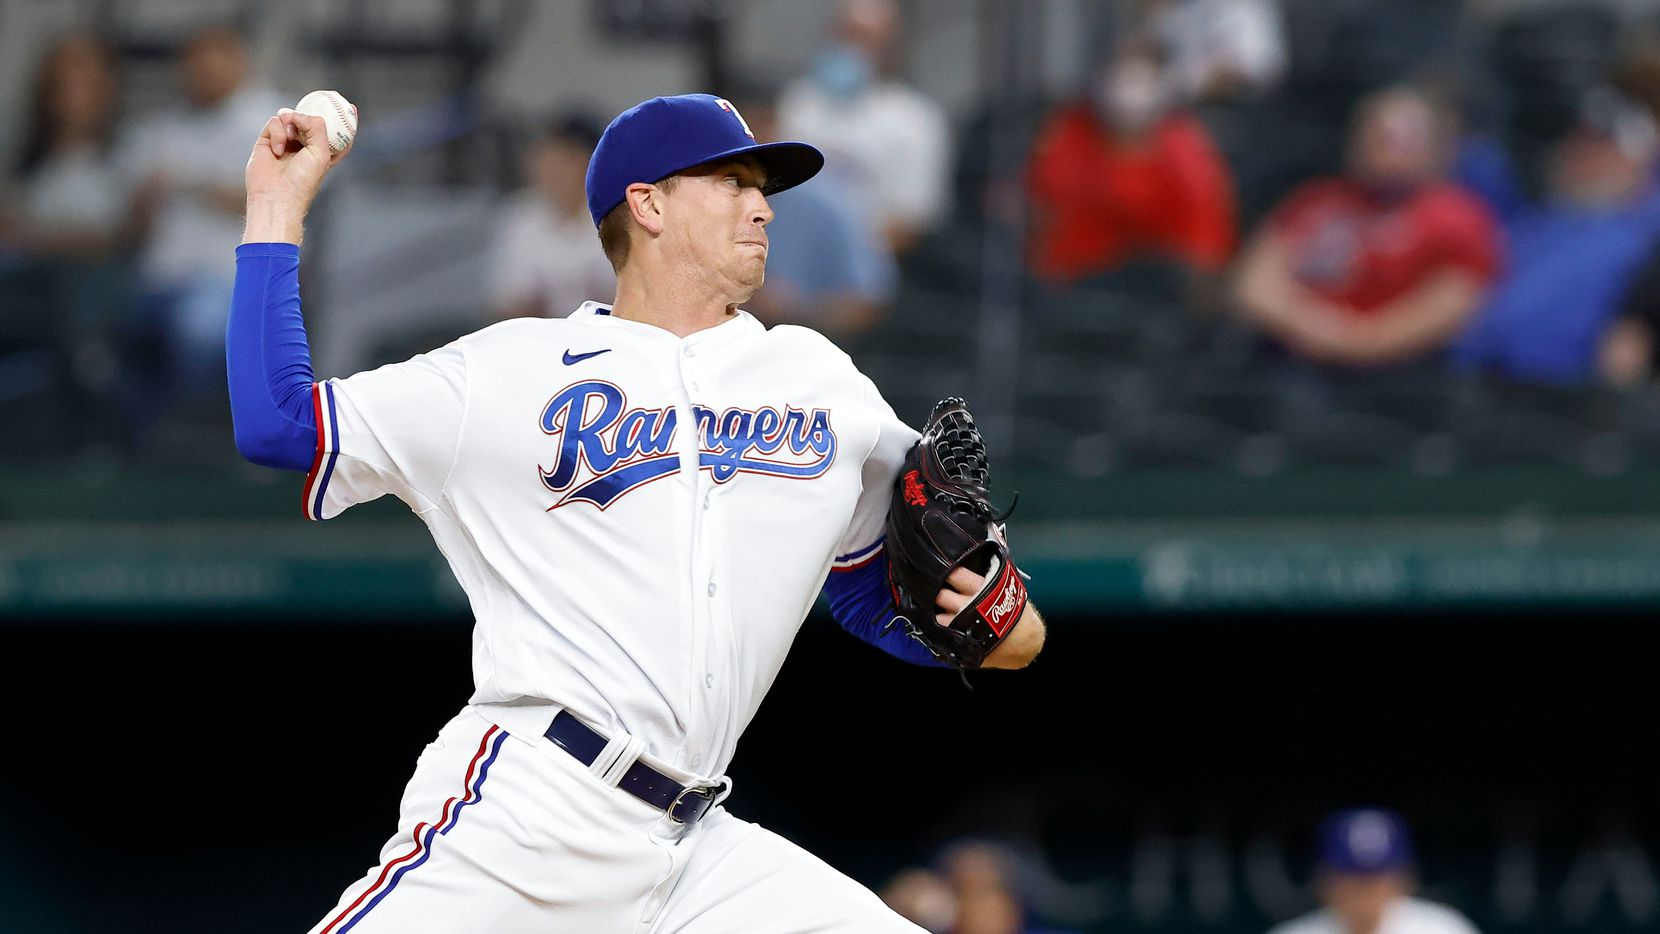 Texas Rangers starting pitcher Kyle Gibson (44) throws against the Boston Red Sox during the first inning at Globe Life Field in Arlington, Texas, Thursday, April 29, 2021. (Tom Fox/The Dallas Morning News)